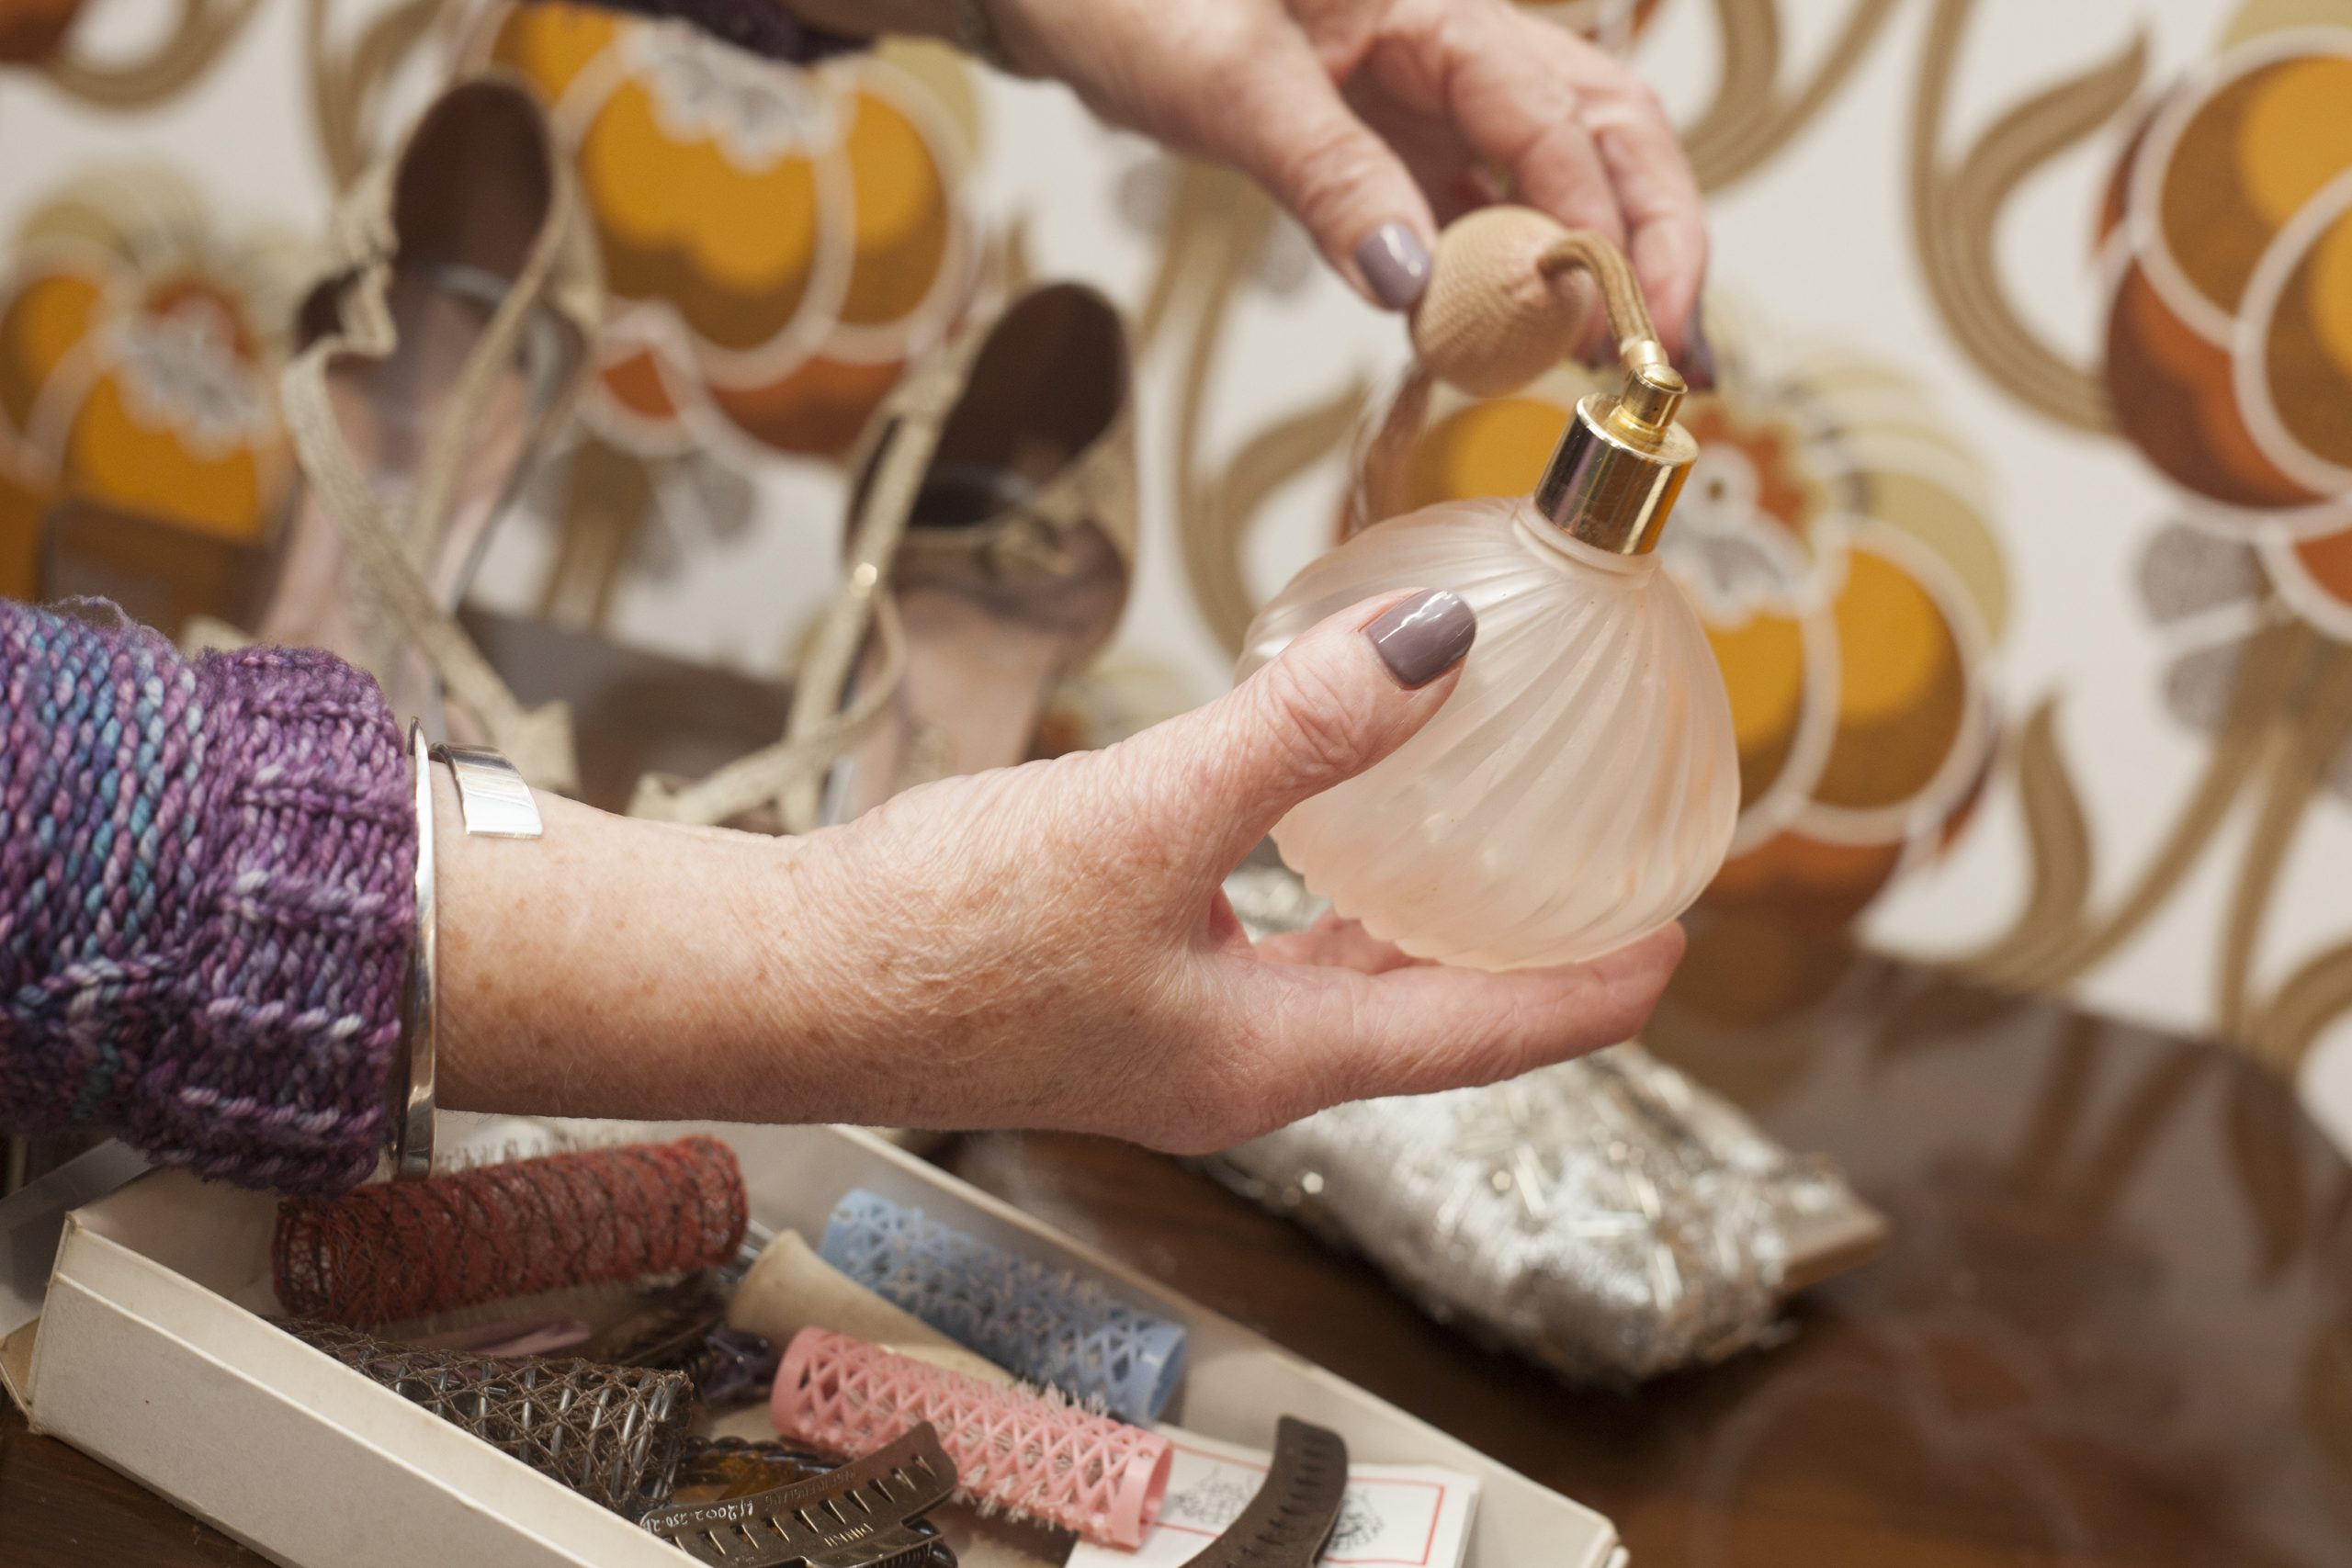 Close up of a woman'shands holding a perfume bottle